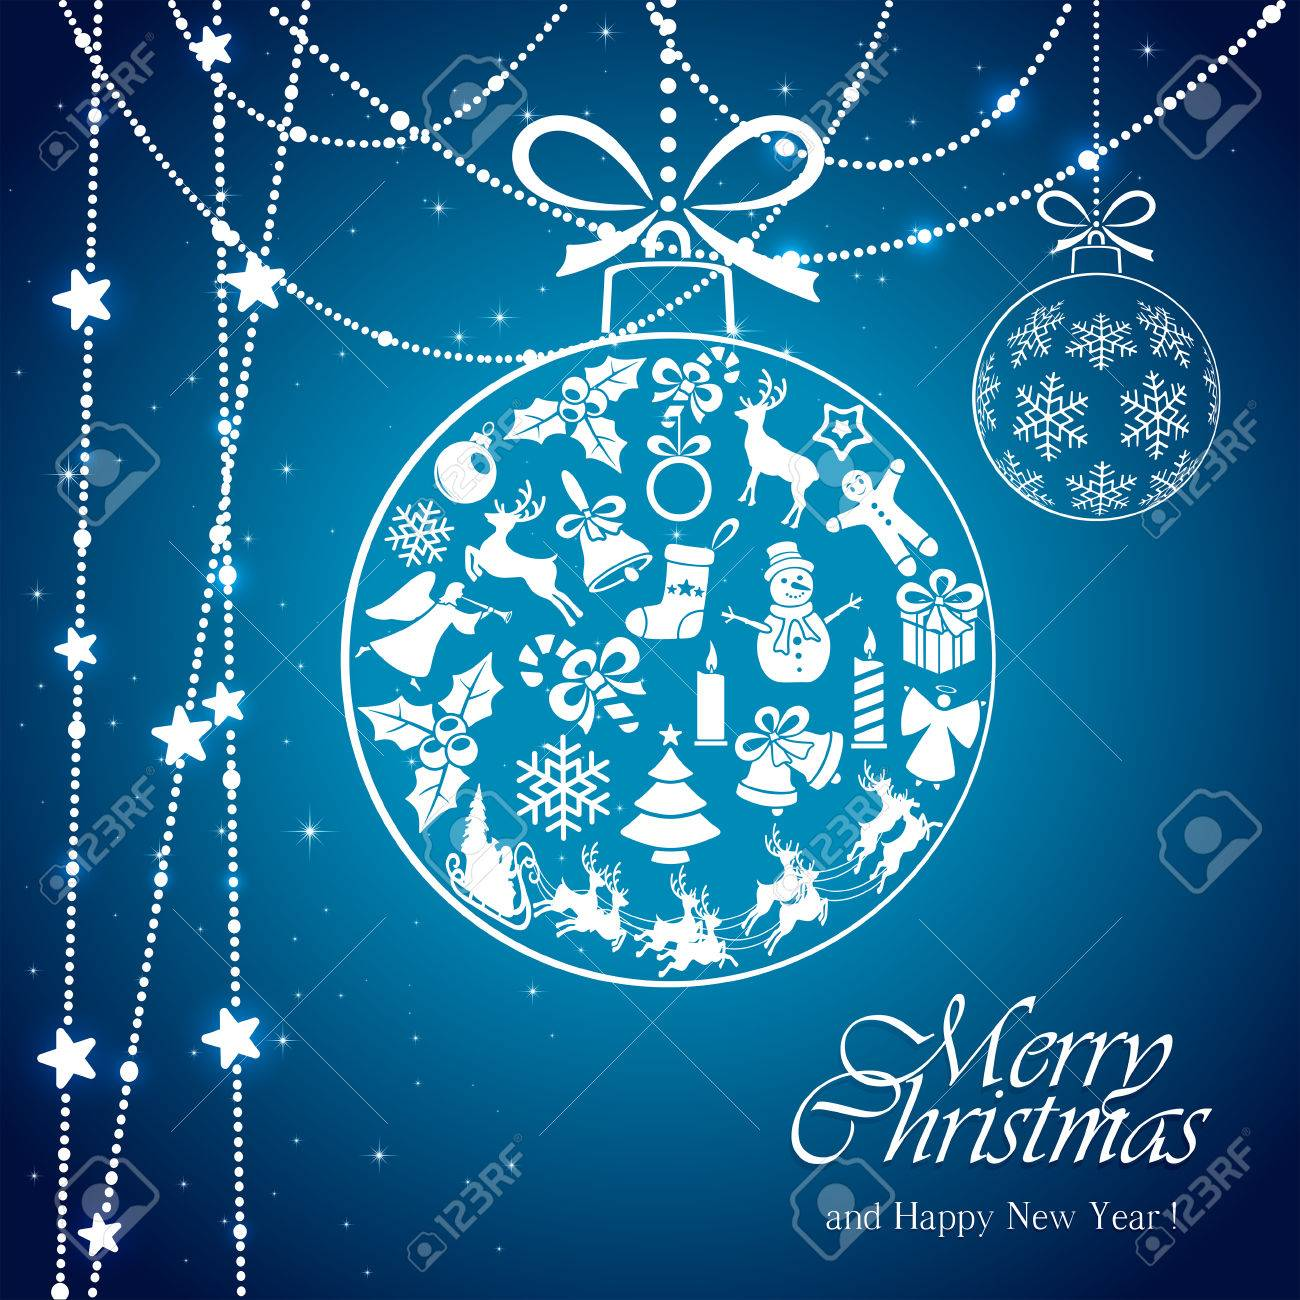 Blue background with transparent ball from Christmas elements and white stars, illustration. - 48256895